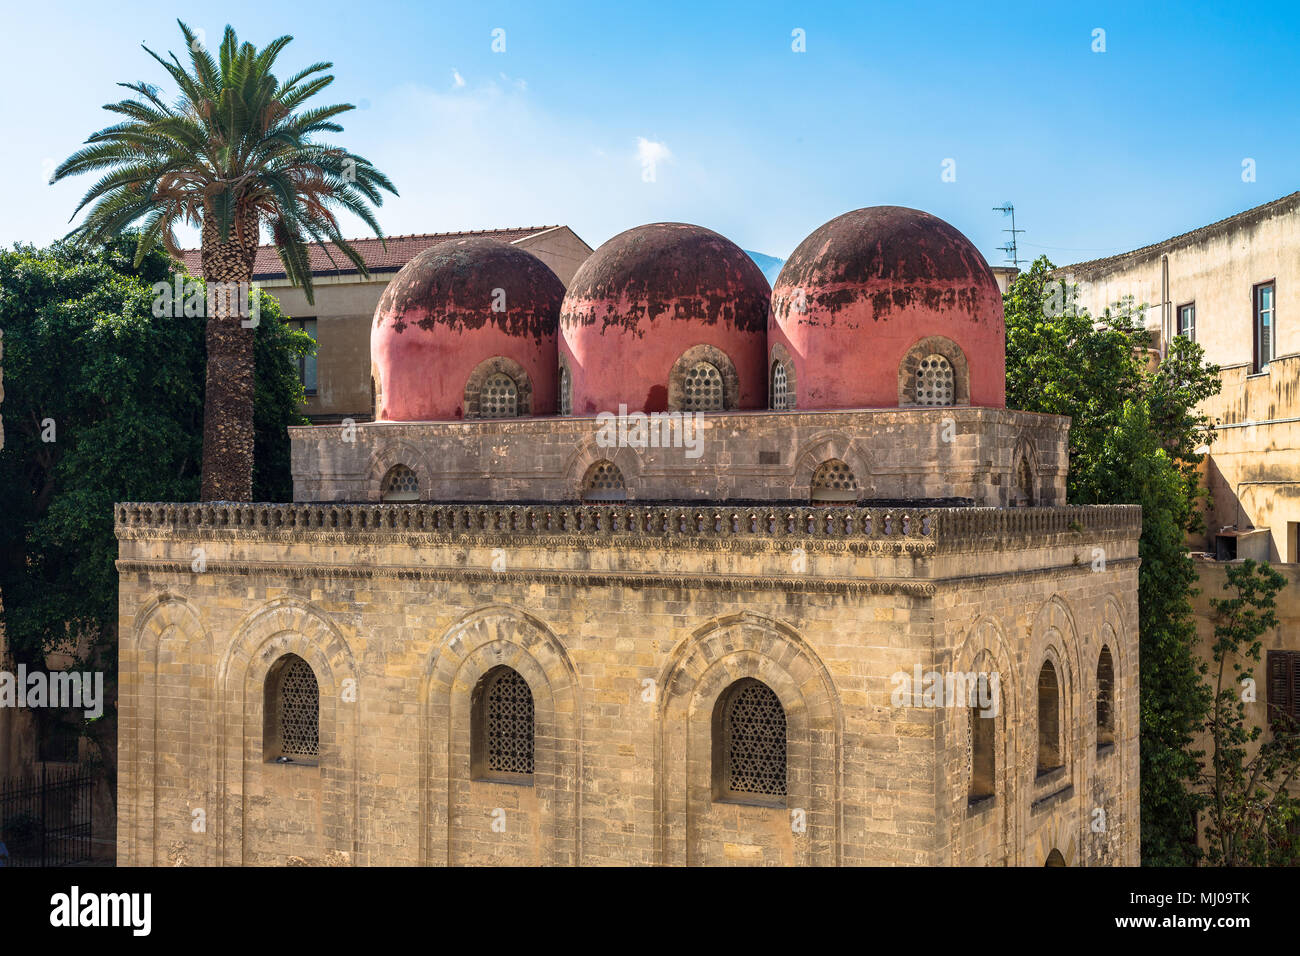 Palermo, Sicily, San Cataldo church - Stock Image